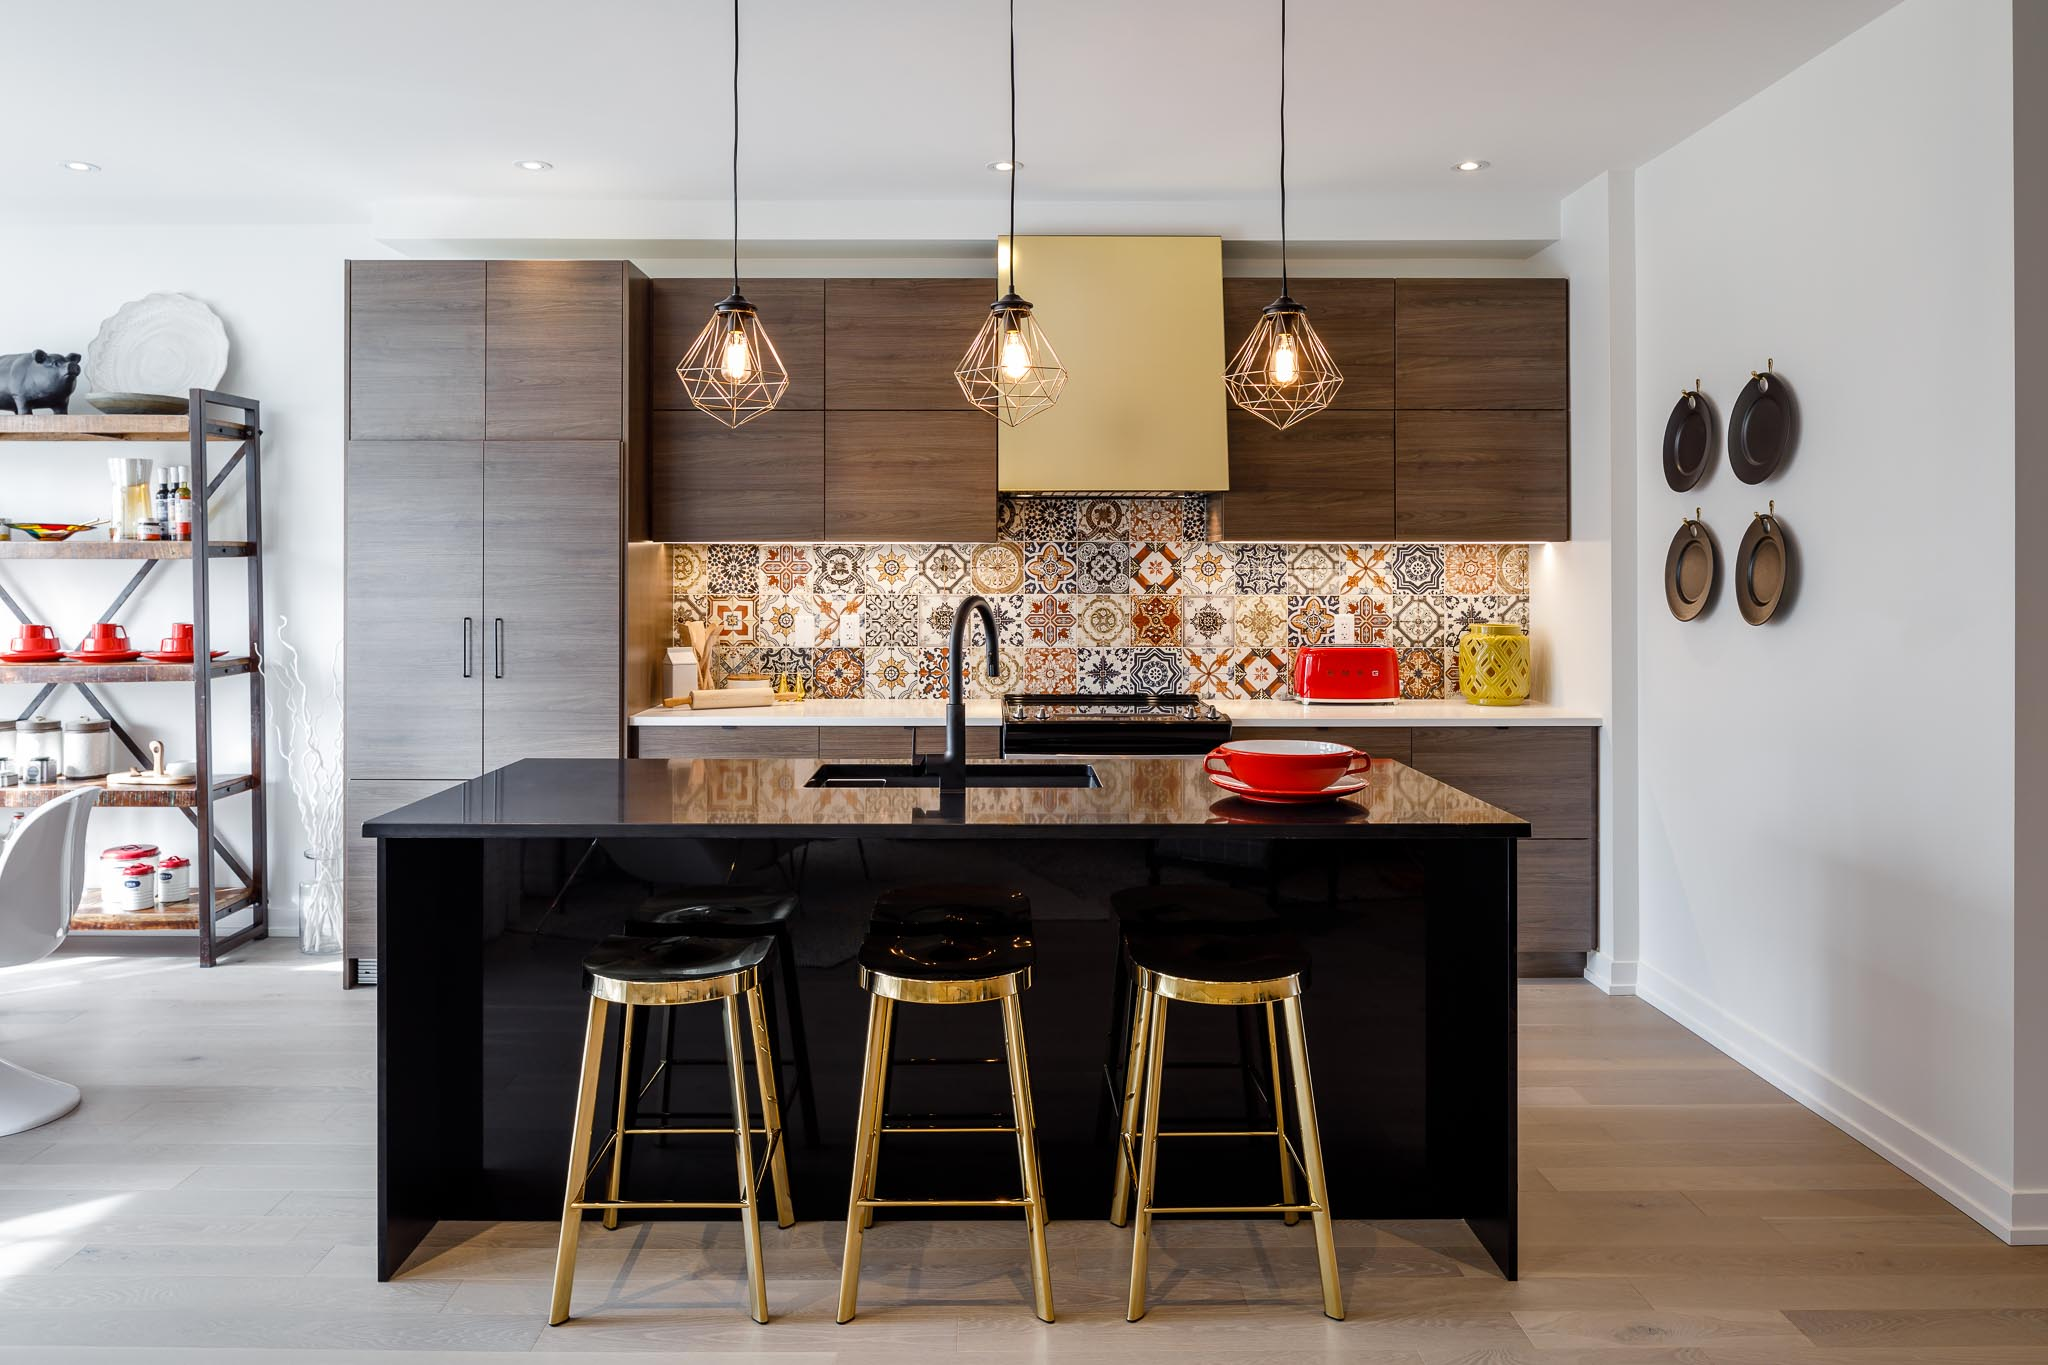 Great Gulf Westfield kitchen with black marble island, brass stools, brown cabinets, and patterned backsplash